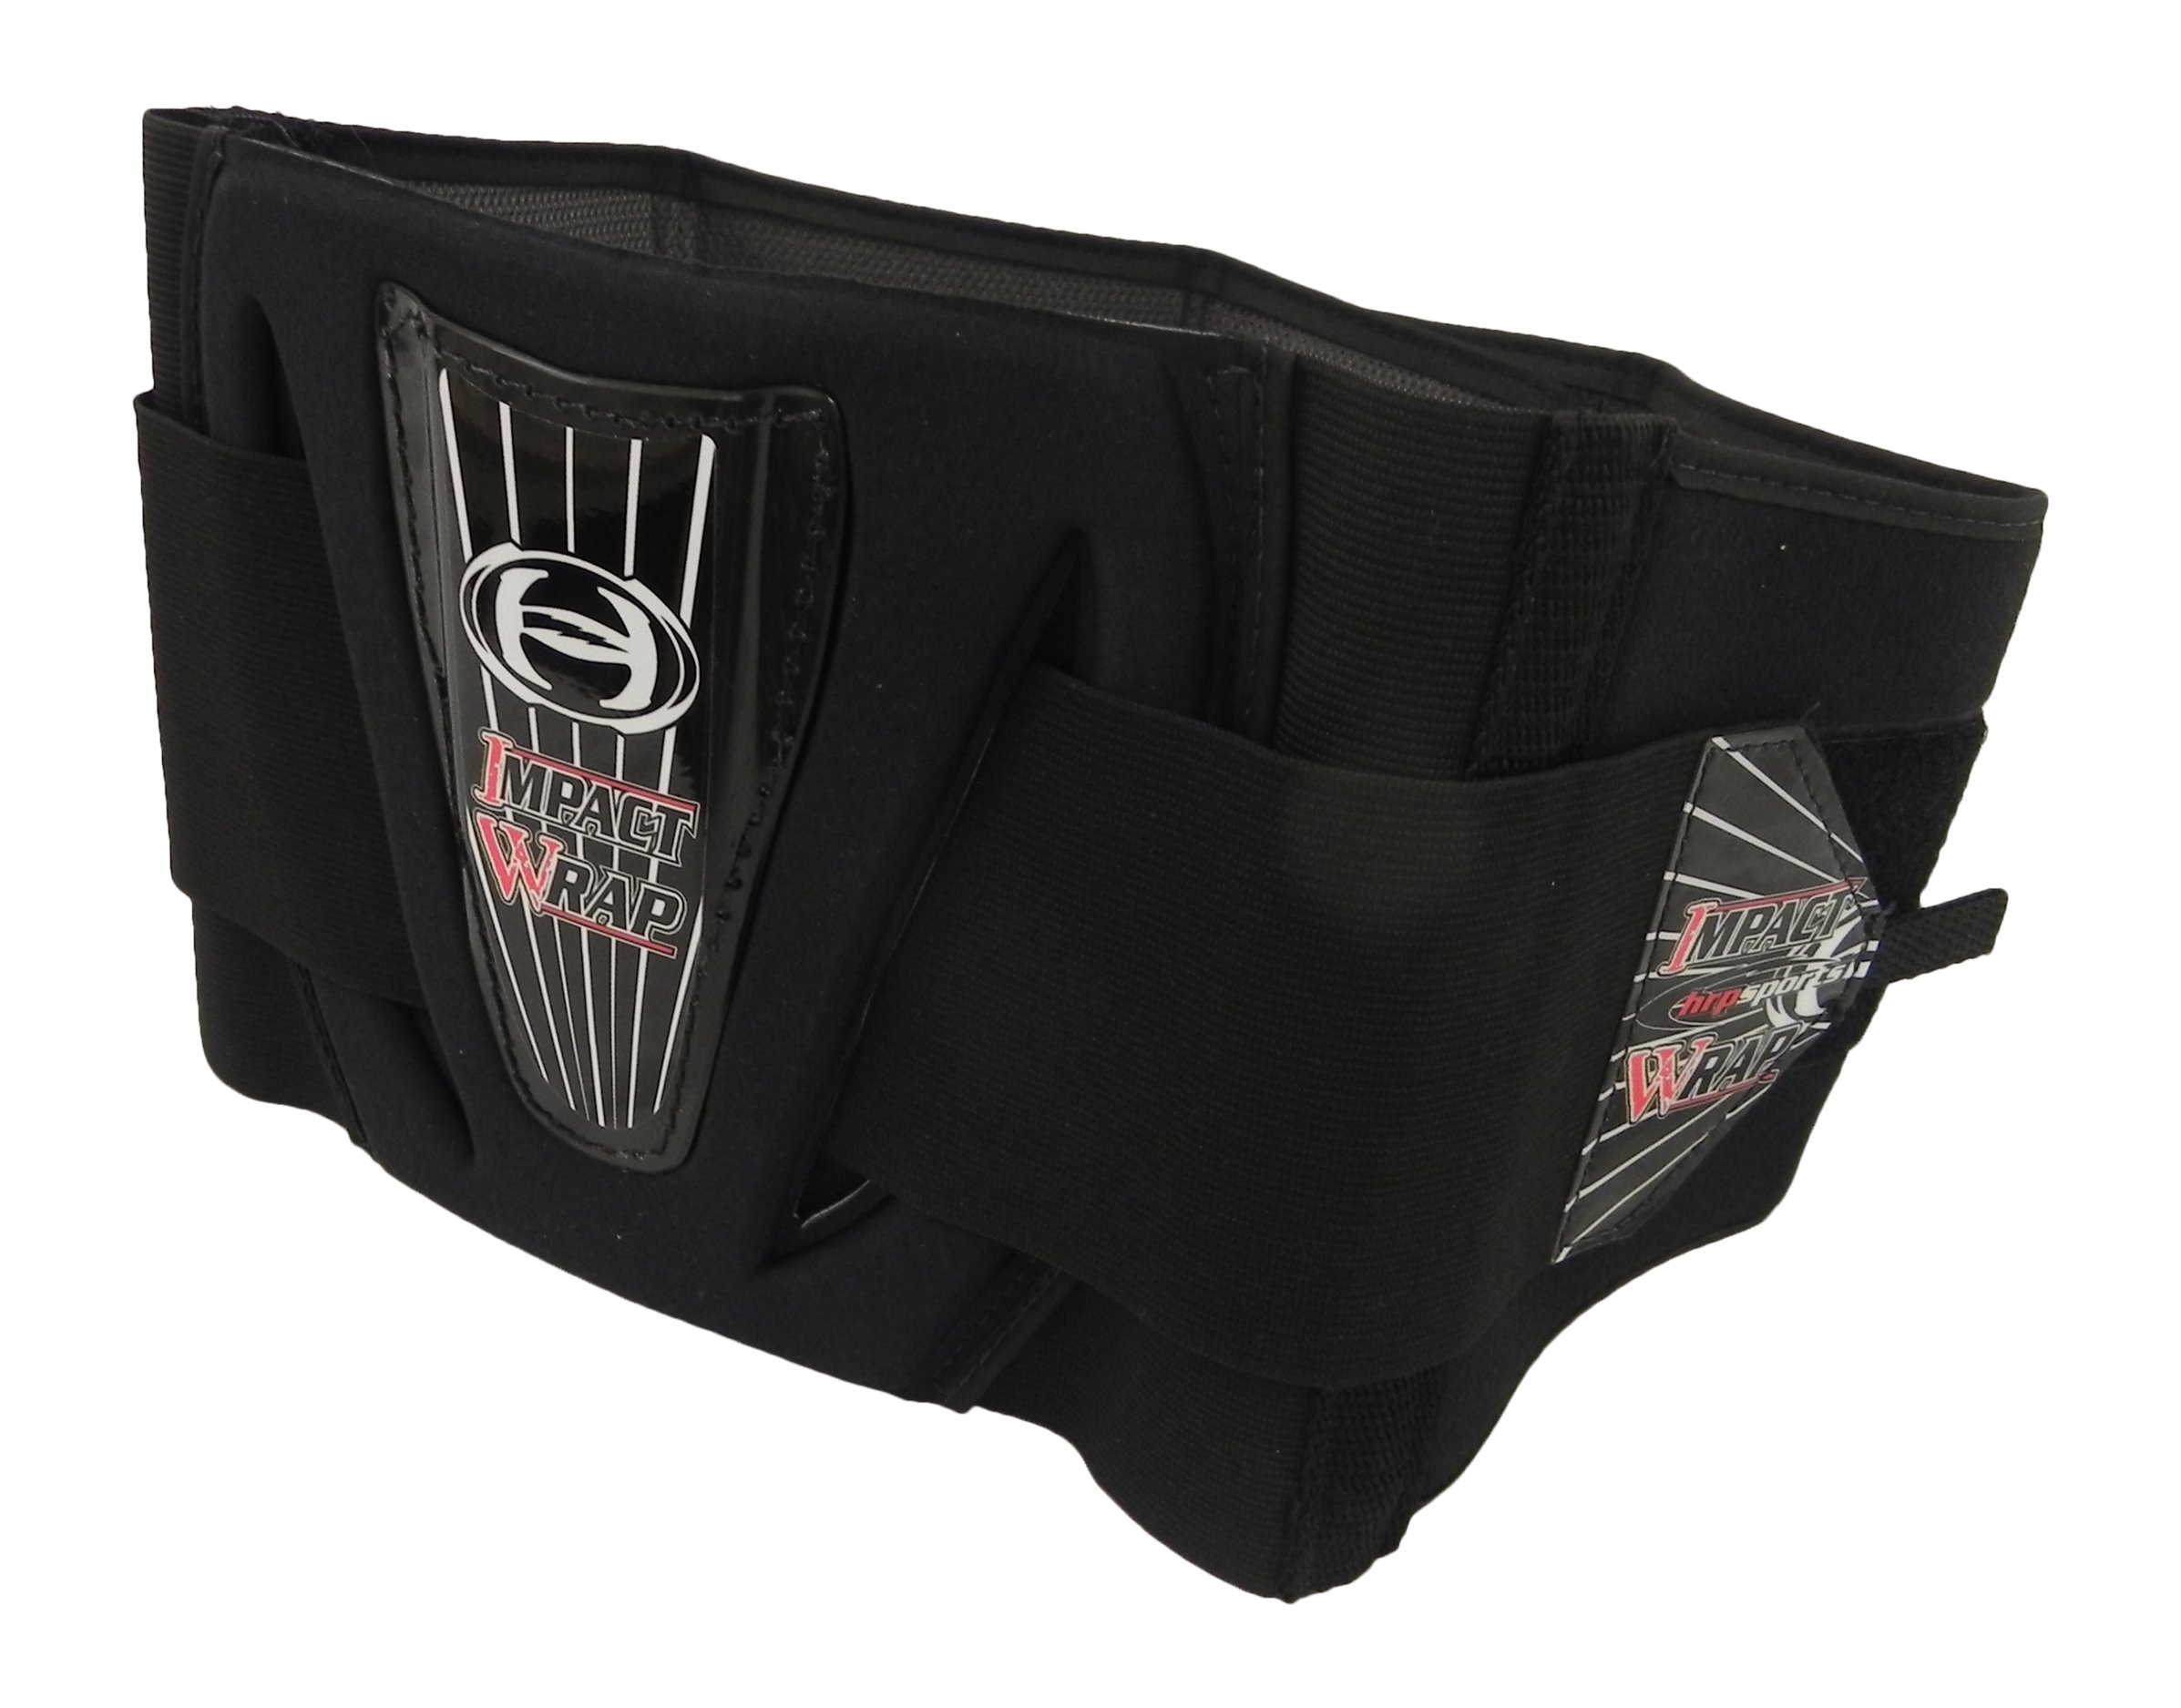 HRP Impact Wrap Adjustable Kidney Belt Back Support (sm (26''-30''), black)